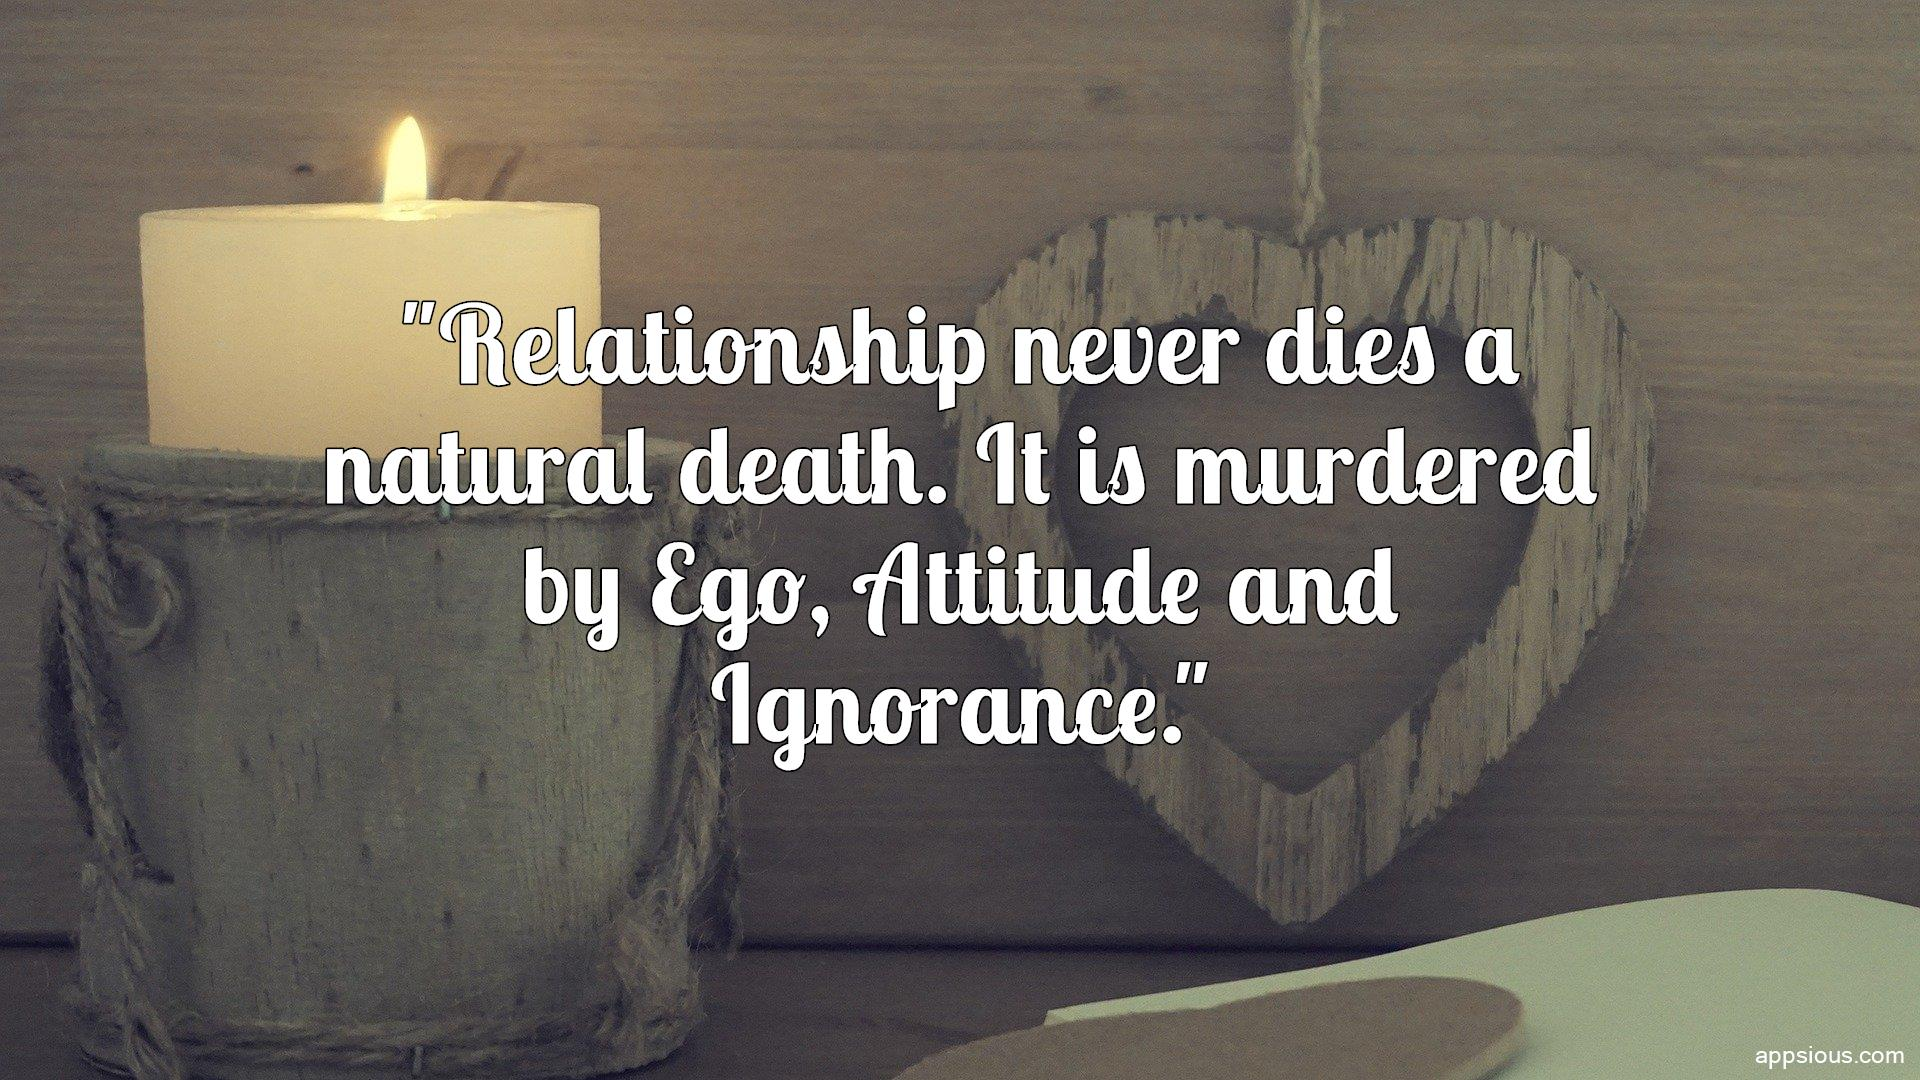 Relationship never dies a natural death. It is murdered by Ego, Attitude and Ignorance.